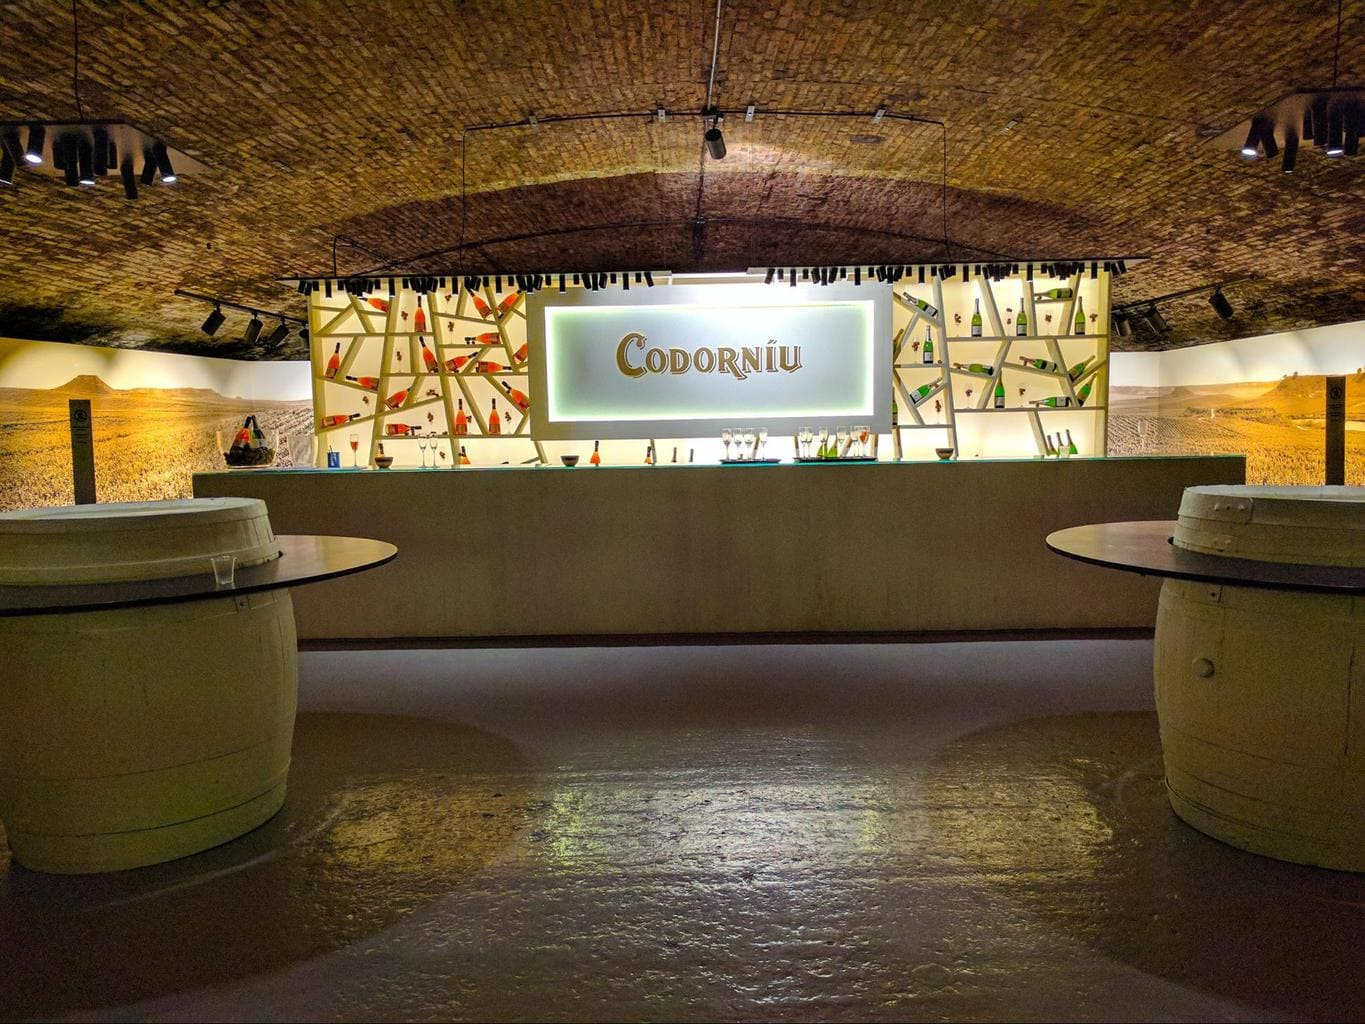 Codorniu's bar